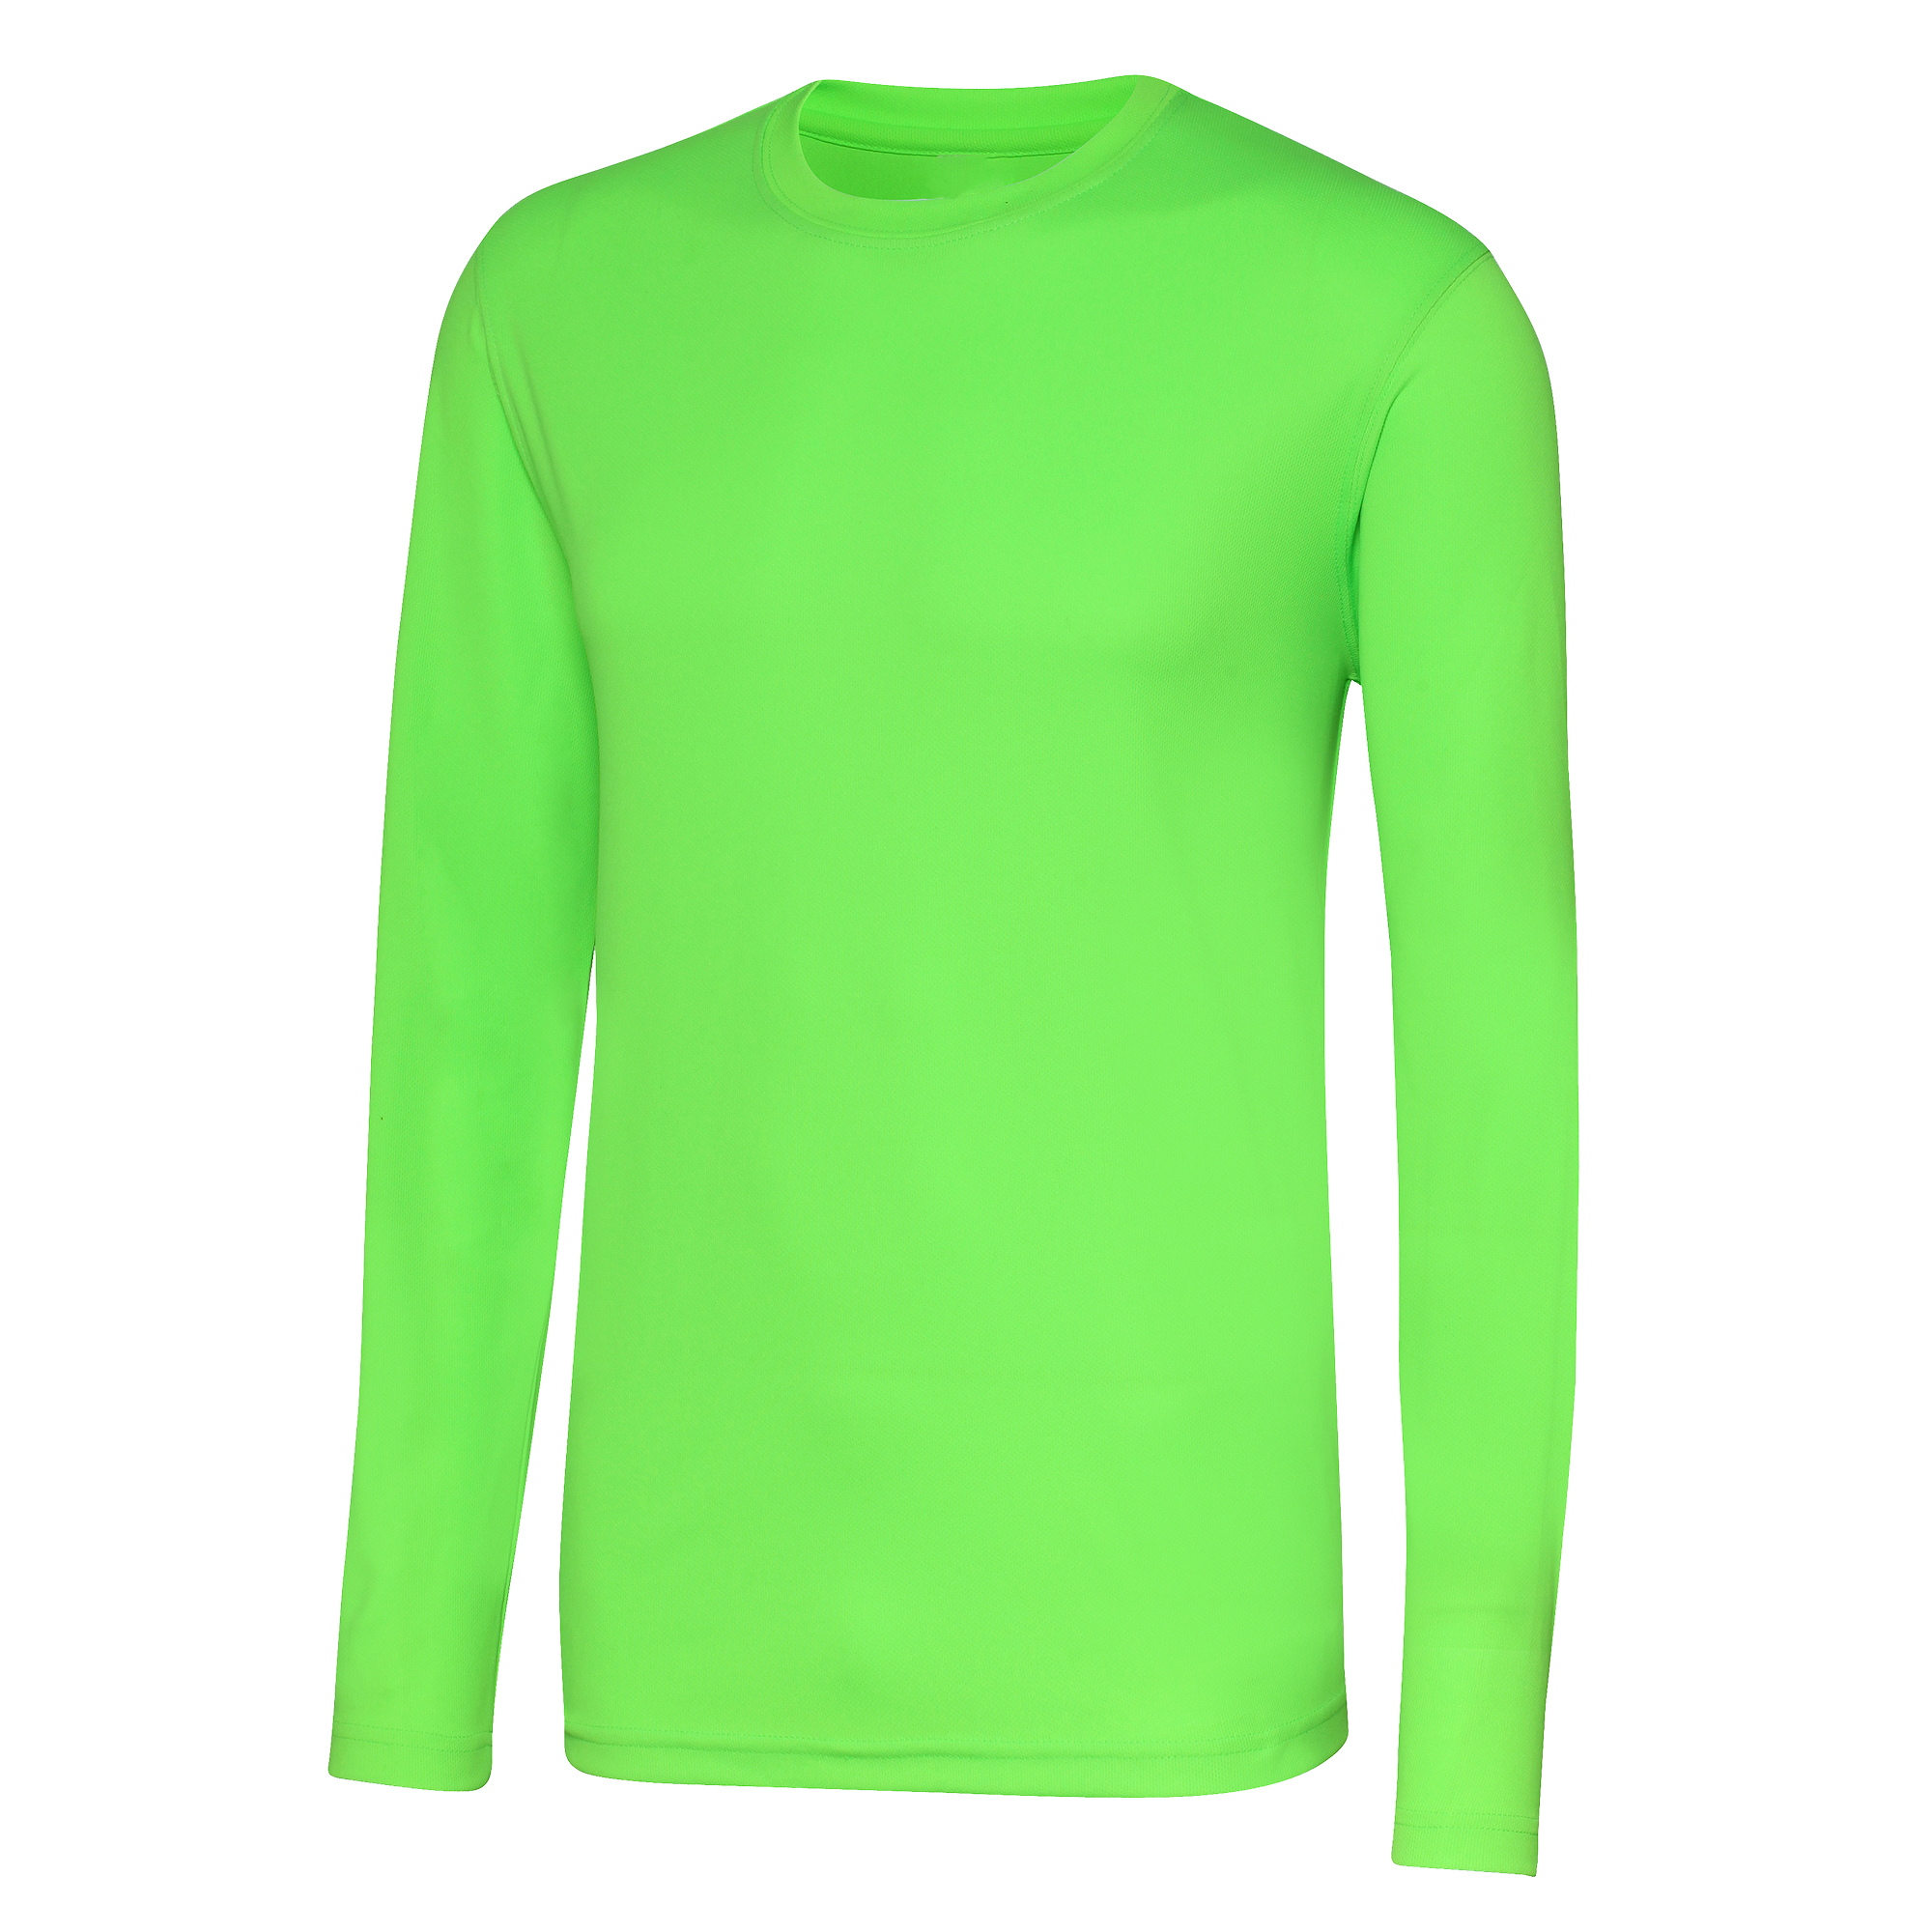 A comfortable long-sleeve pique polo performs thanks to cool and dry moisture-wicking technology. Constructed of oz., % polyester mesh pique. Some of its best features include moisture-wicking, UV protection, pill-resistant, tagless, fully taped flat rib-knit collar, half-moon patch, 3 .